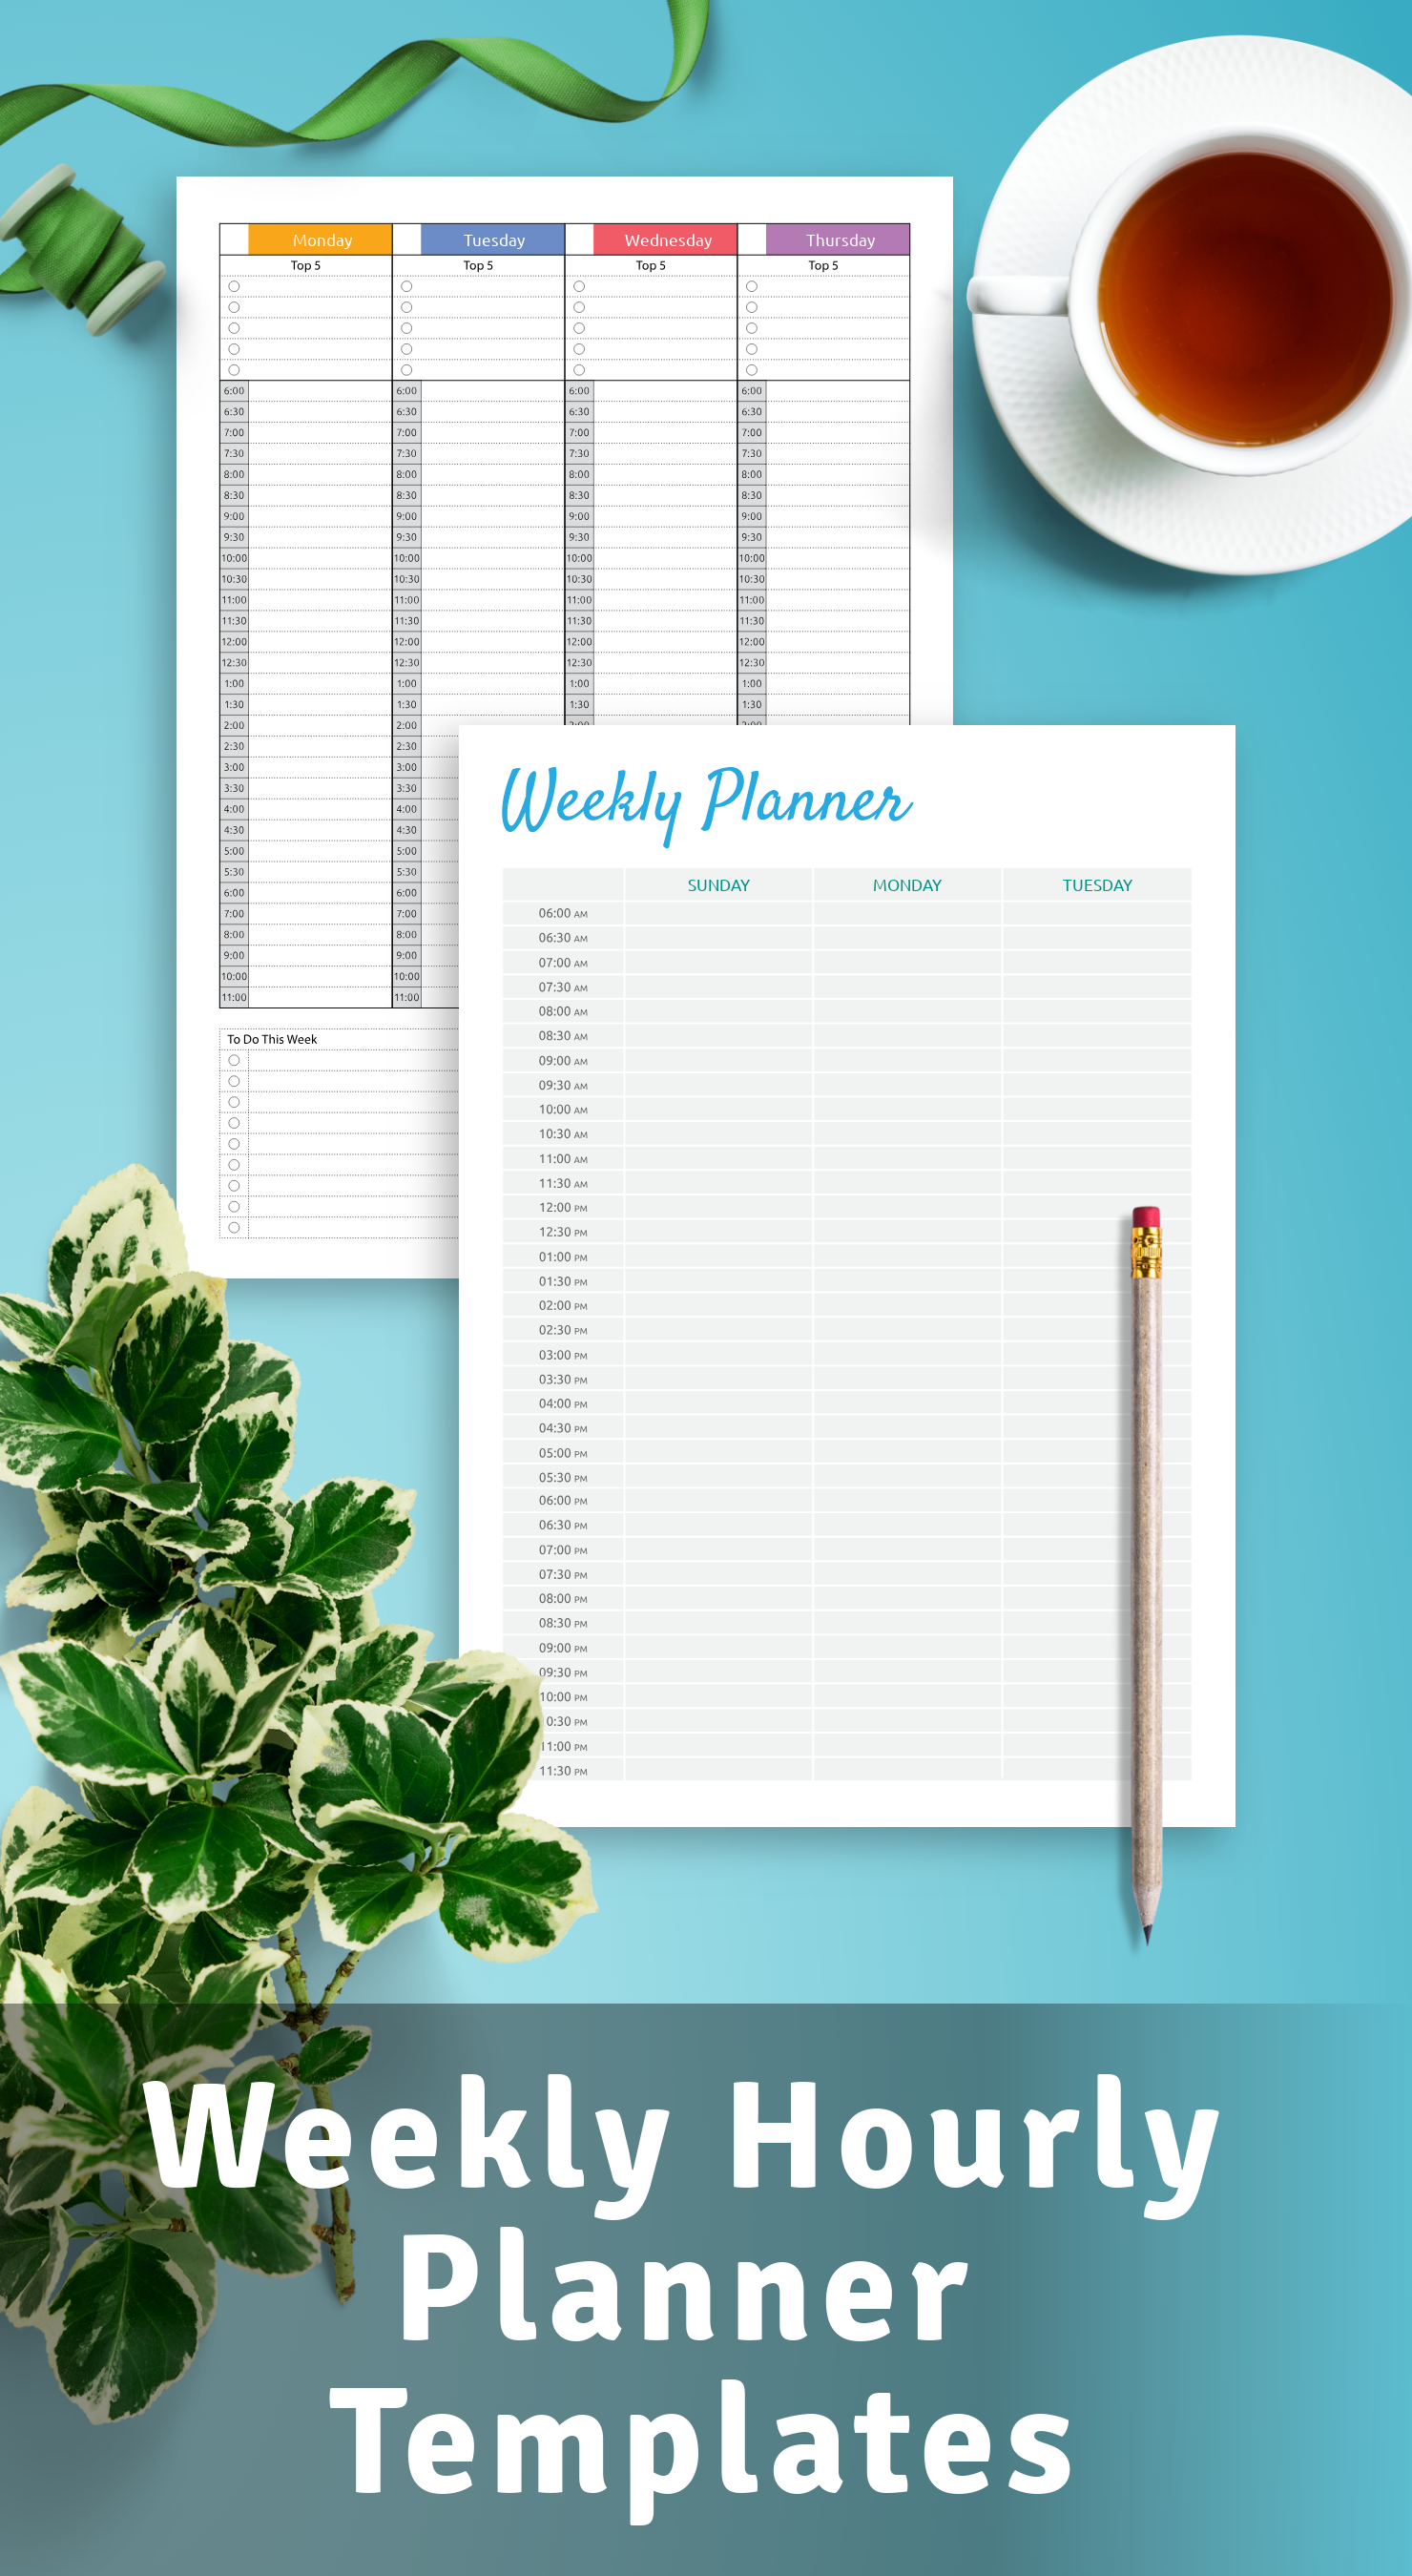 weekly hourly planner templates